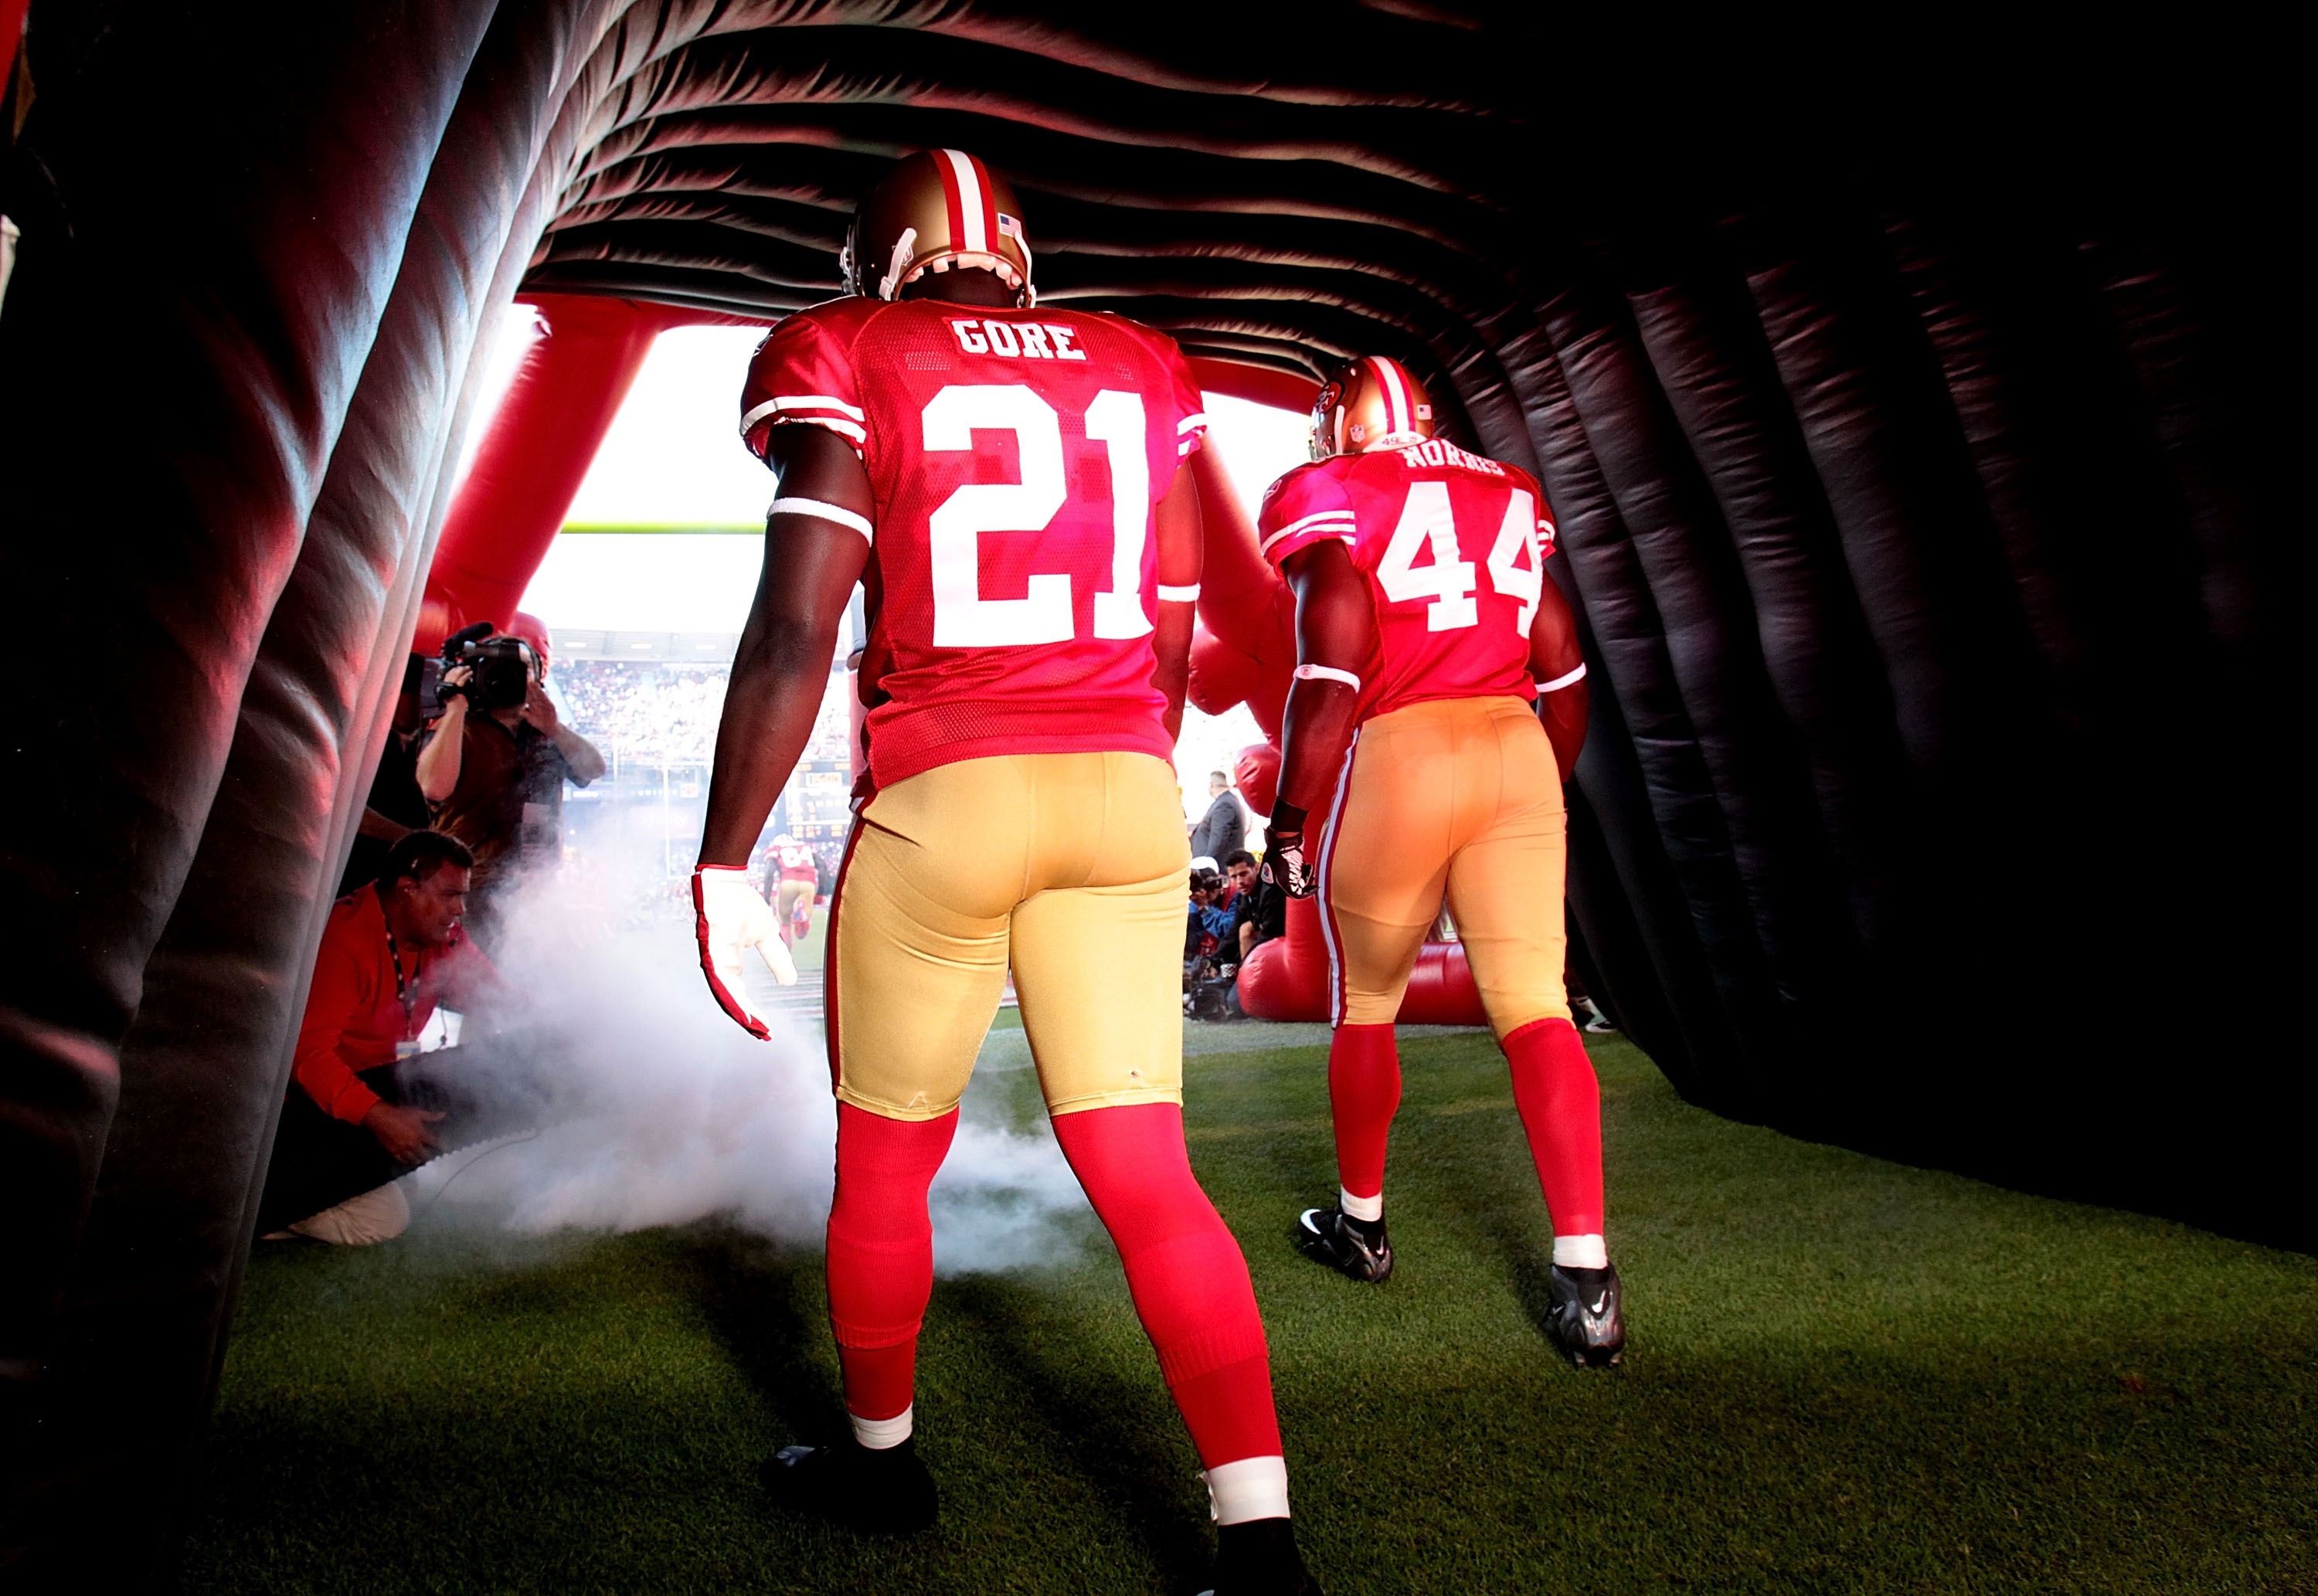 SAN FRANCISCO - SEPTEMBER 20:  Frank Gore #21 of the San Francisco 49ers is introduced against the New Orleans Saints during an NFL game at Candlestick Park on September 20, 2010 in San Francisco, California.  (Photo by Jed Jacobsohn/Getty Images)